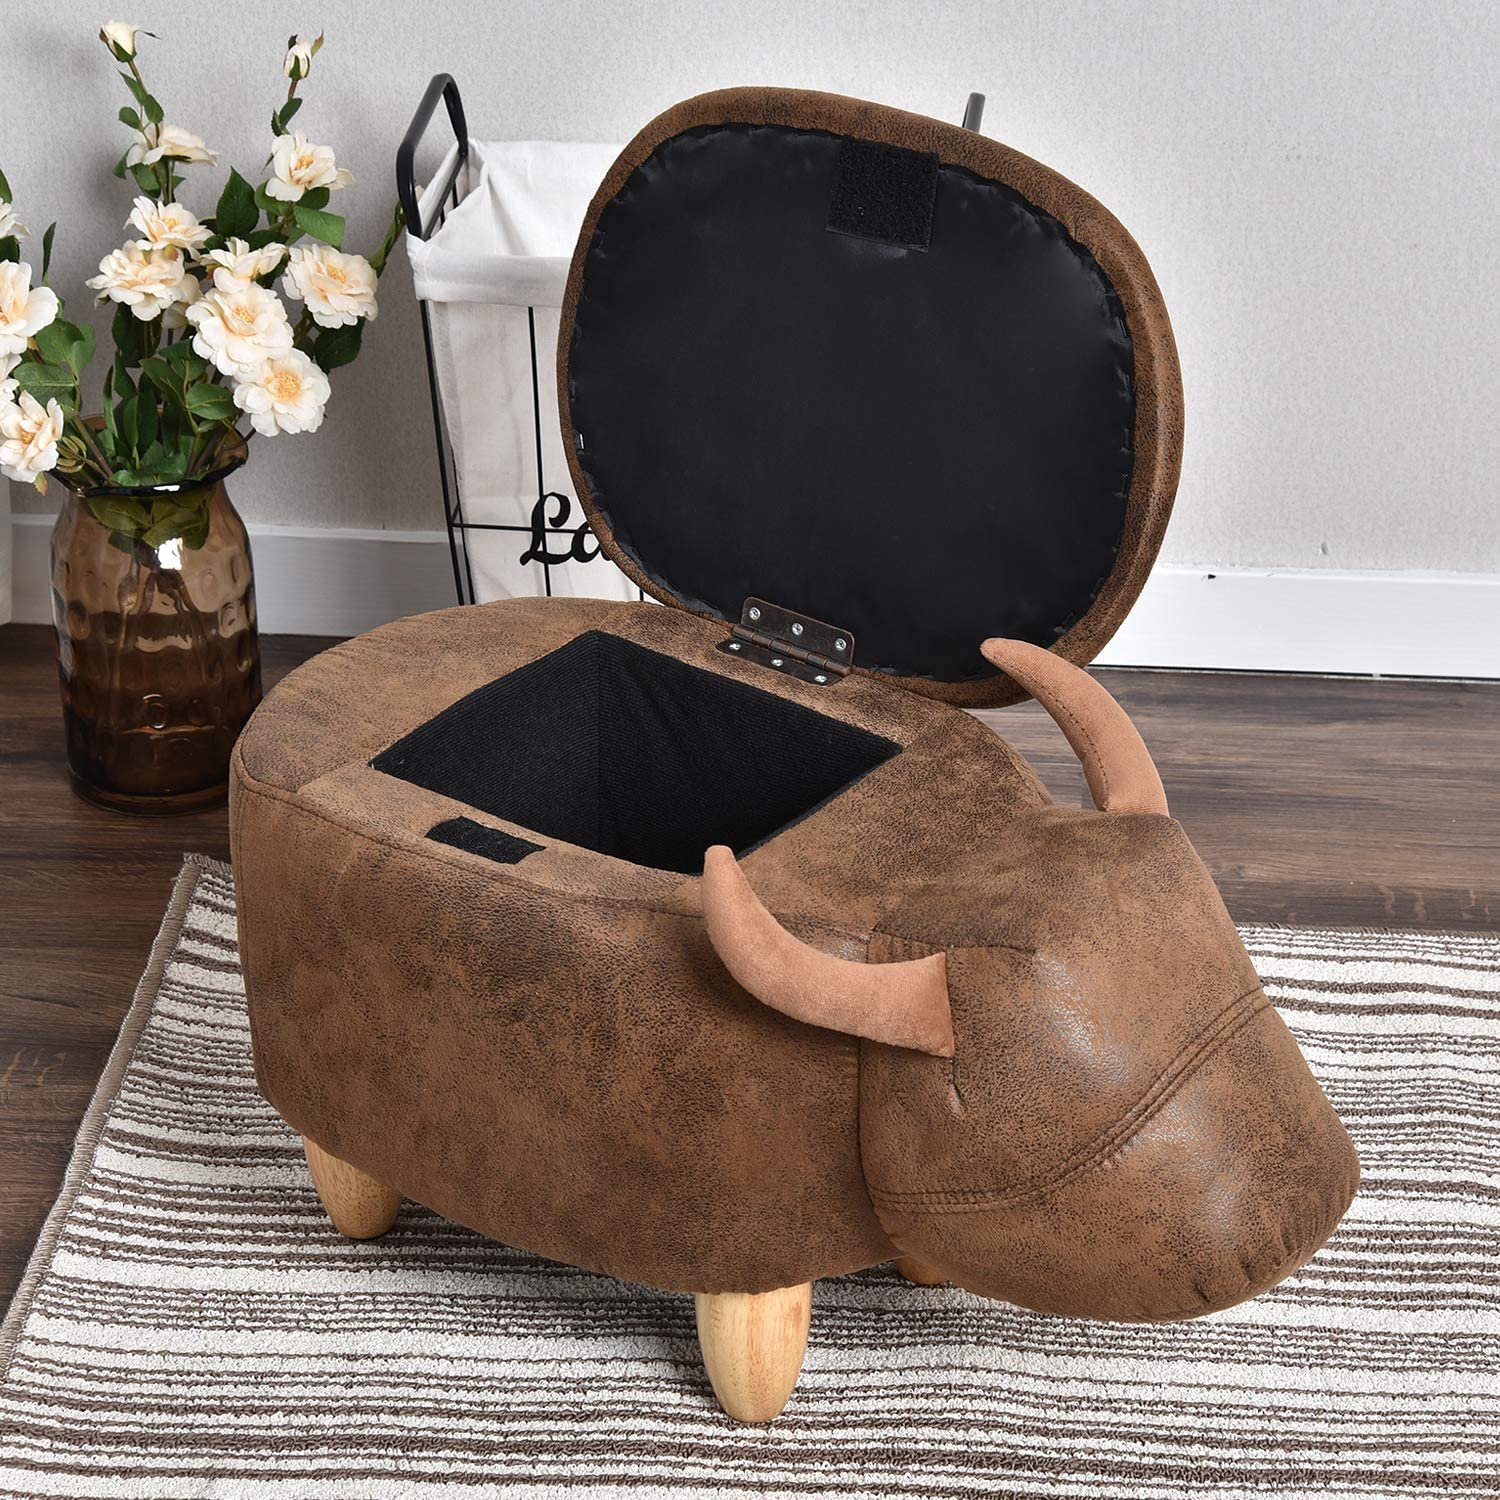 Upholstered Animal Storage Ride-on Ottoman Footrest Stool with 4 Wooden Feet Vivid Adorable Animal-Like Features Cow